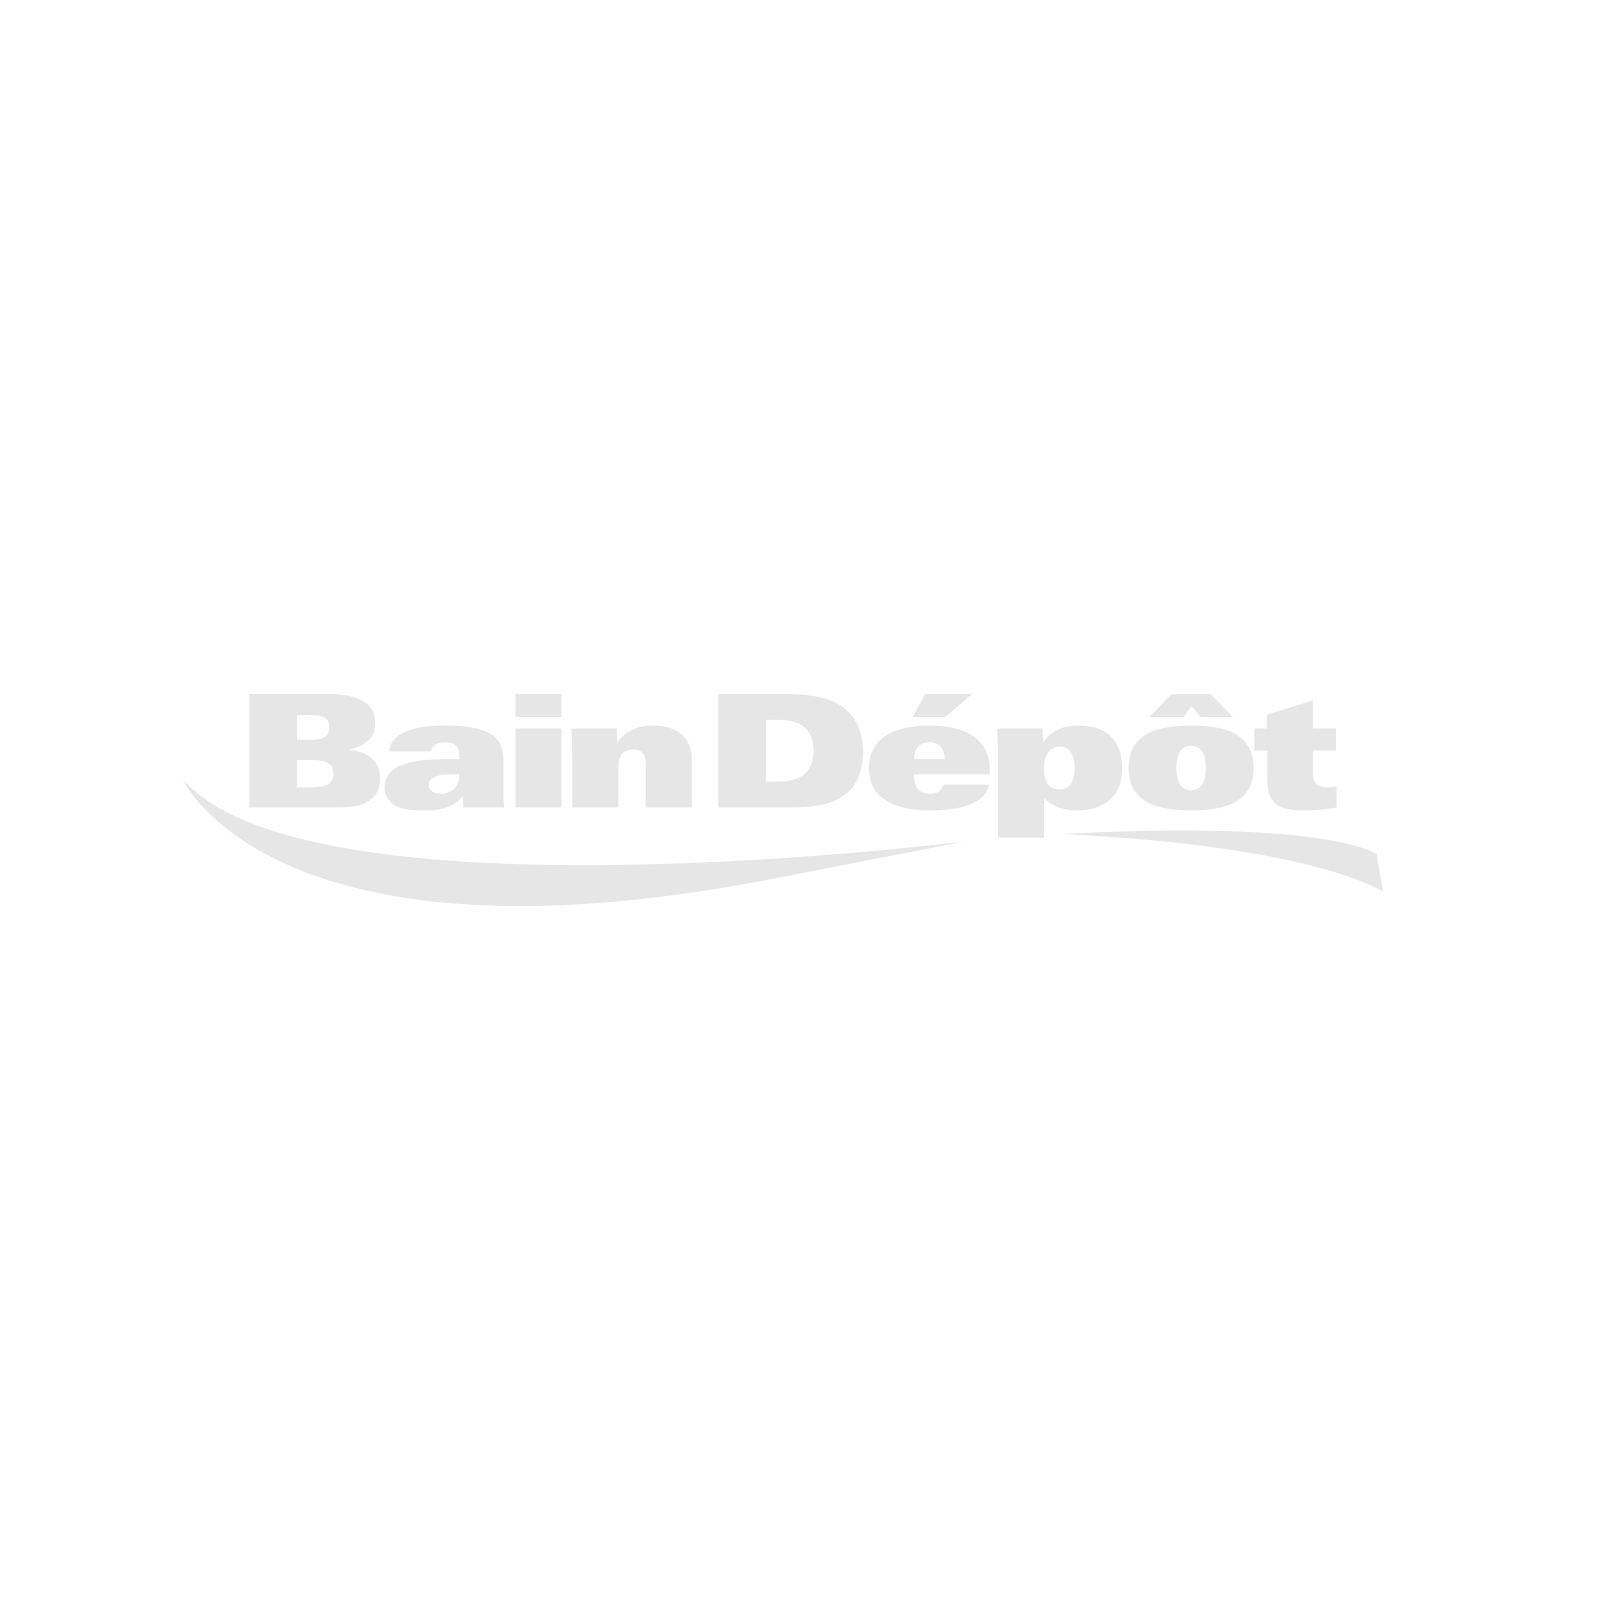 Set of bathroom accessories brushed nickel finish